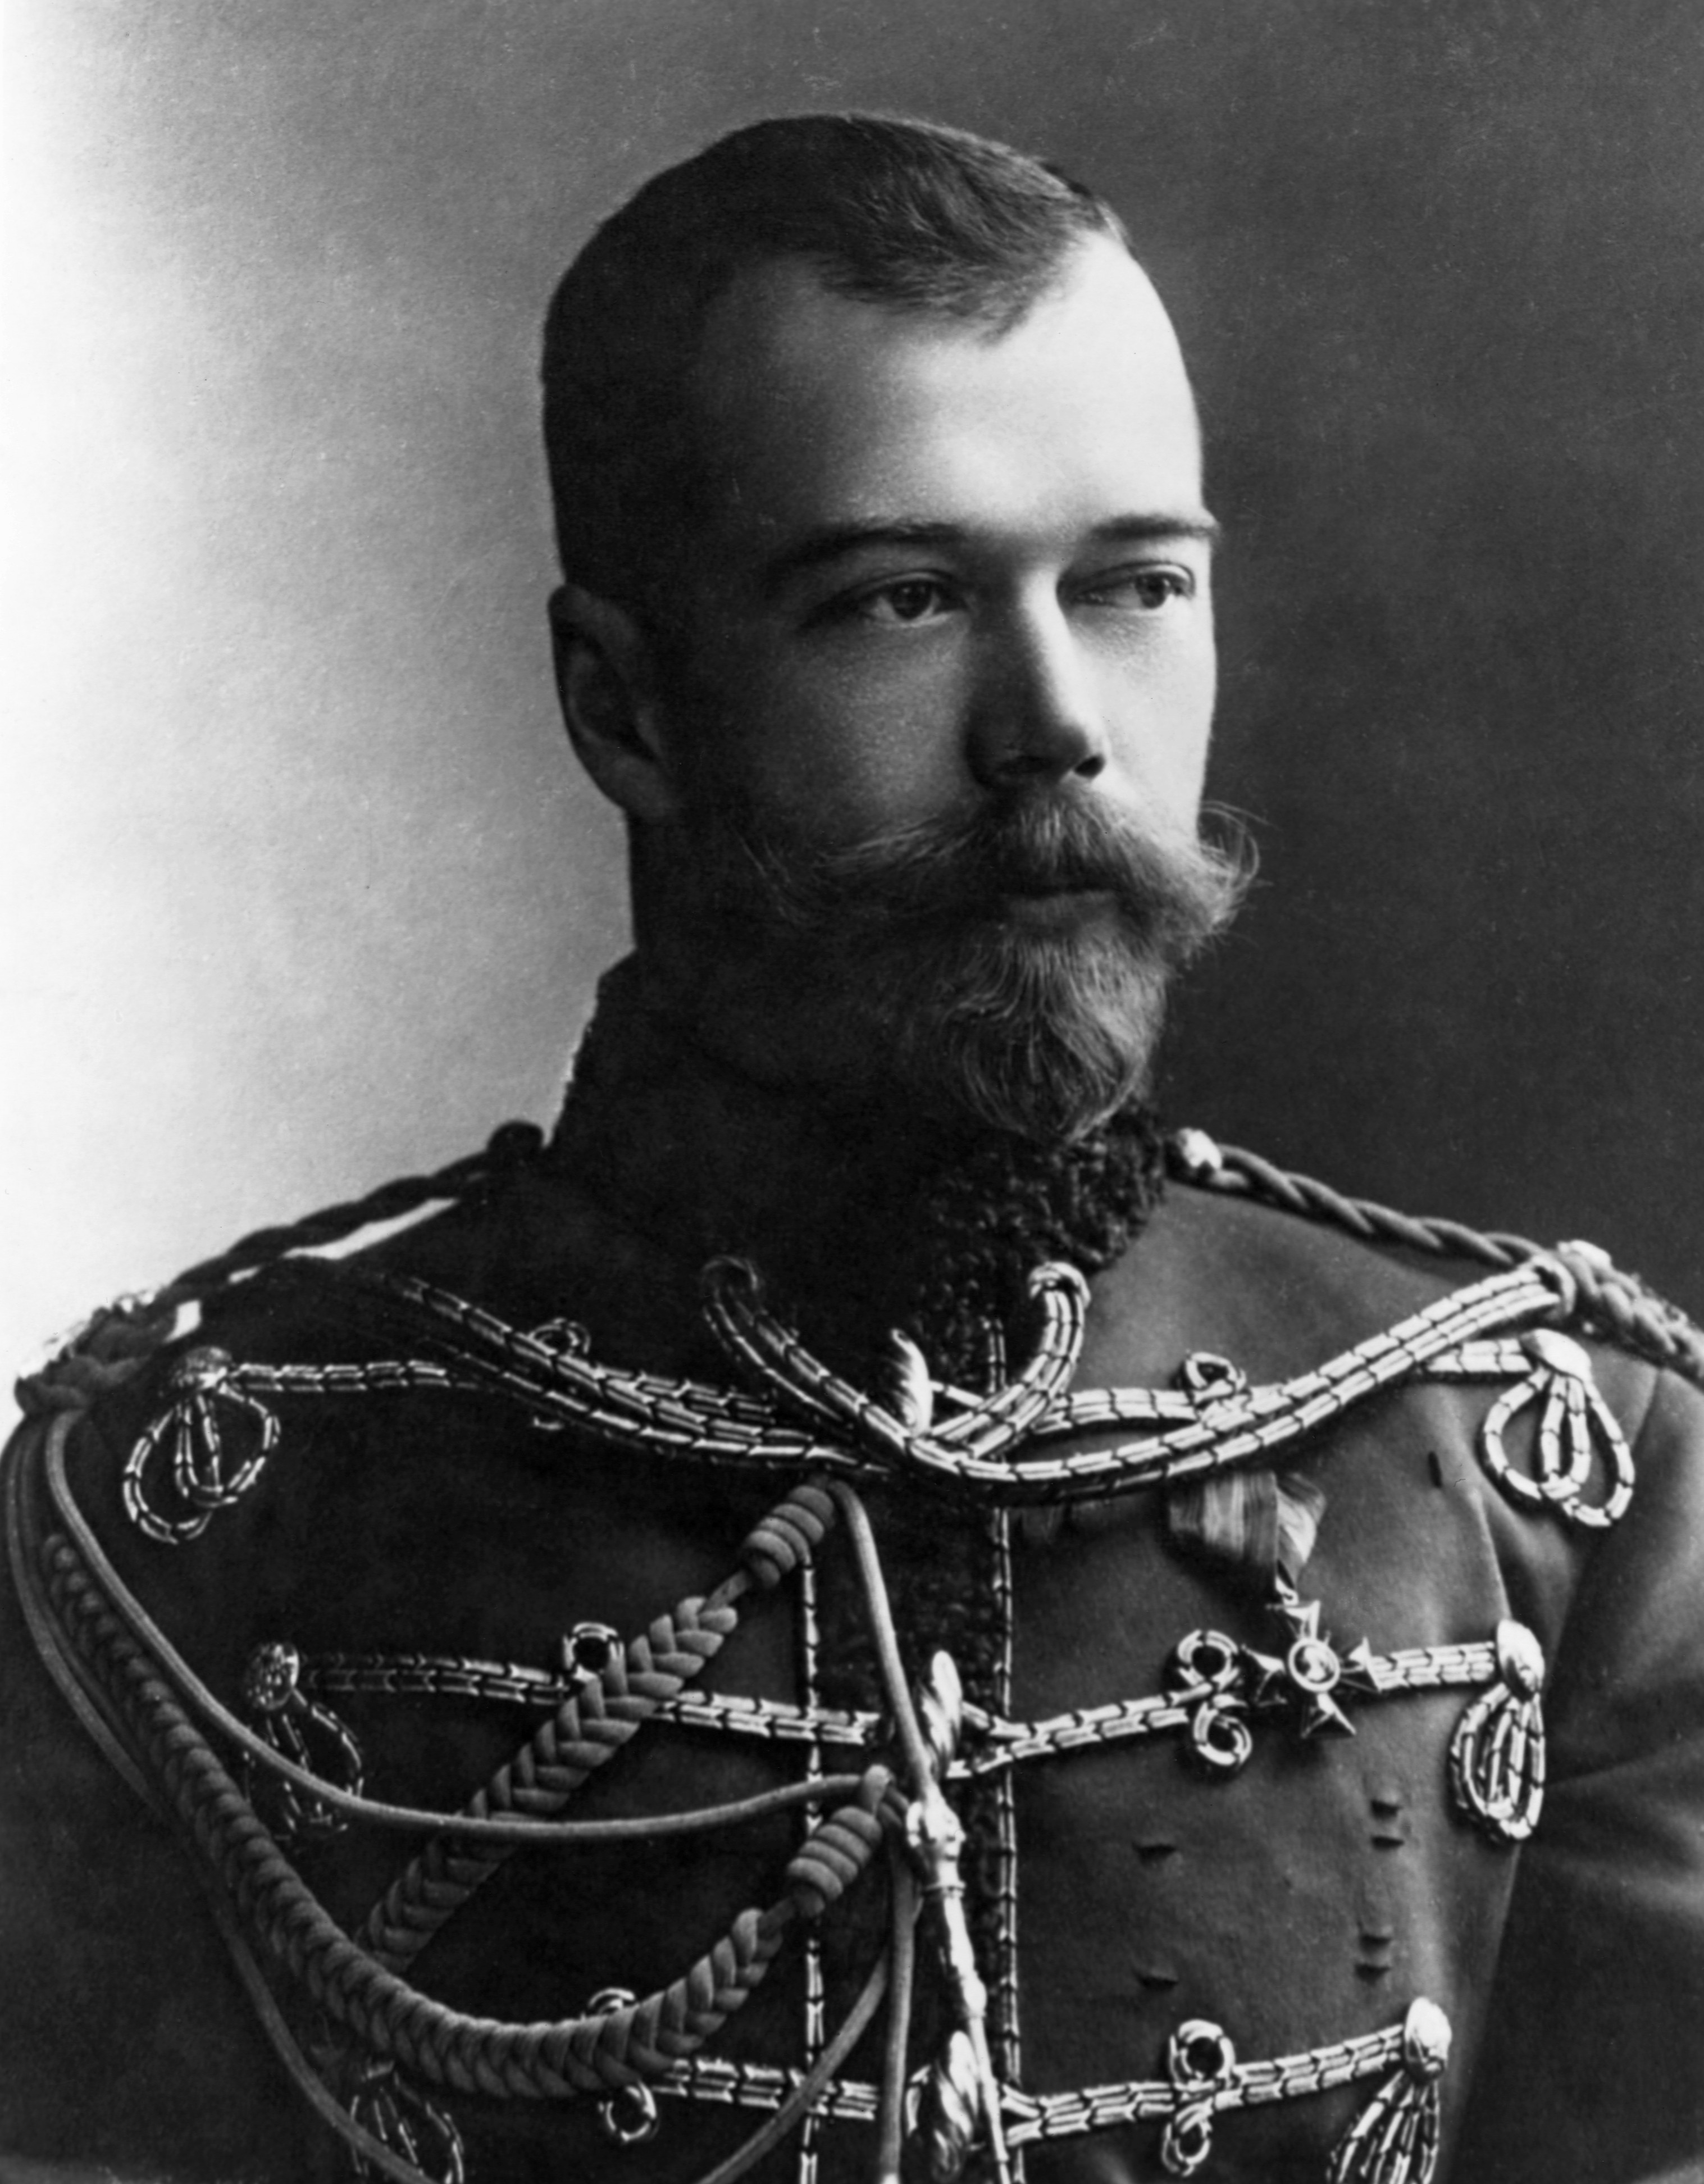 nicholas ii Shop for nicholas ii on etsy, the place to express your creativity through the buying and selling of handmade and vintage goods.